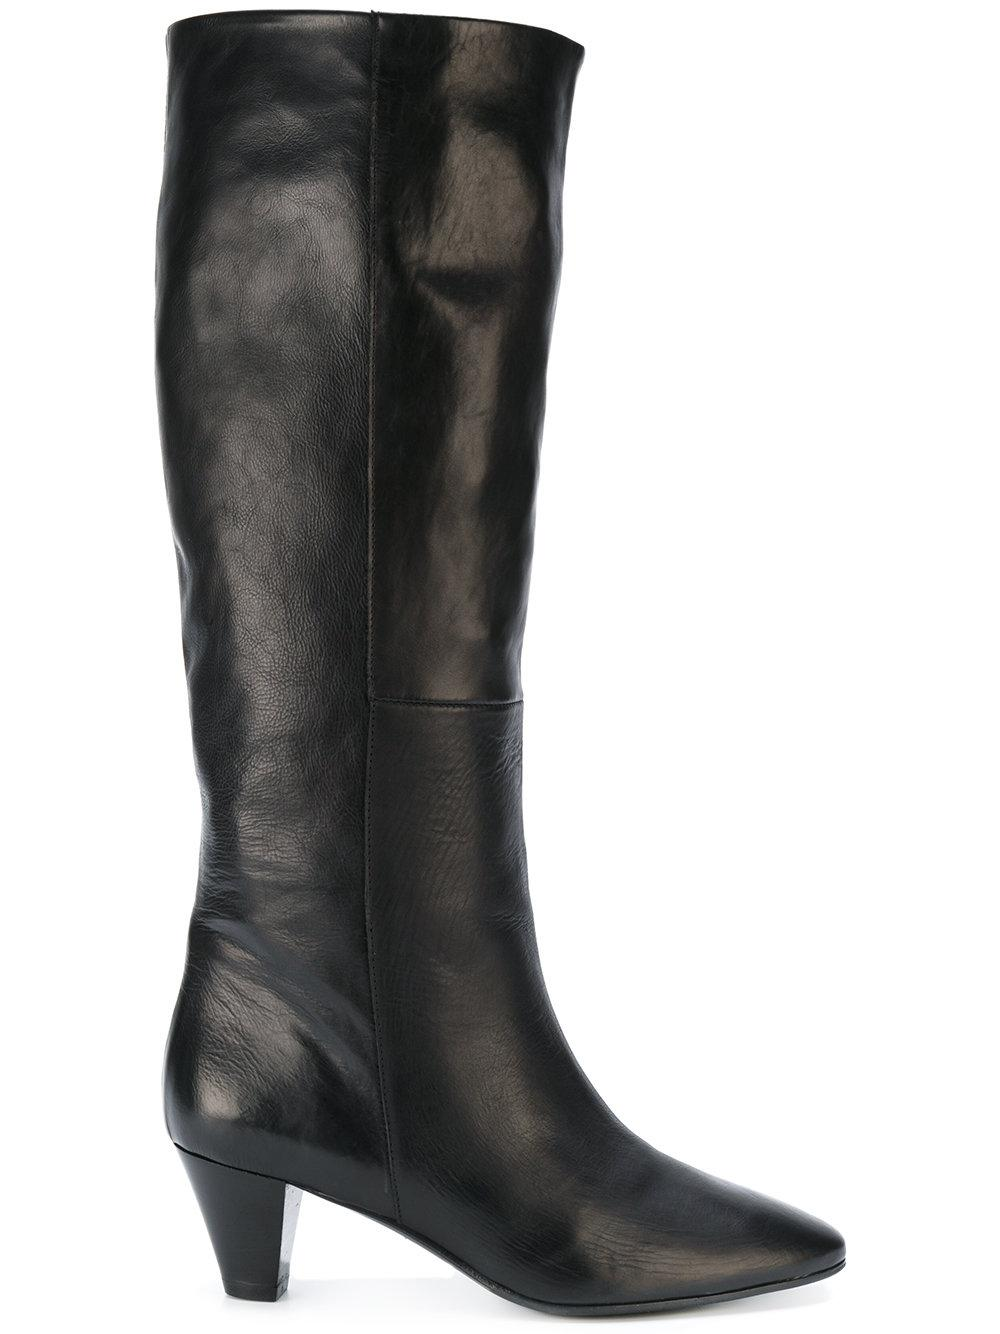 marc ellis knee length leather boots in black lyst